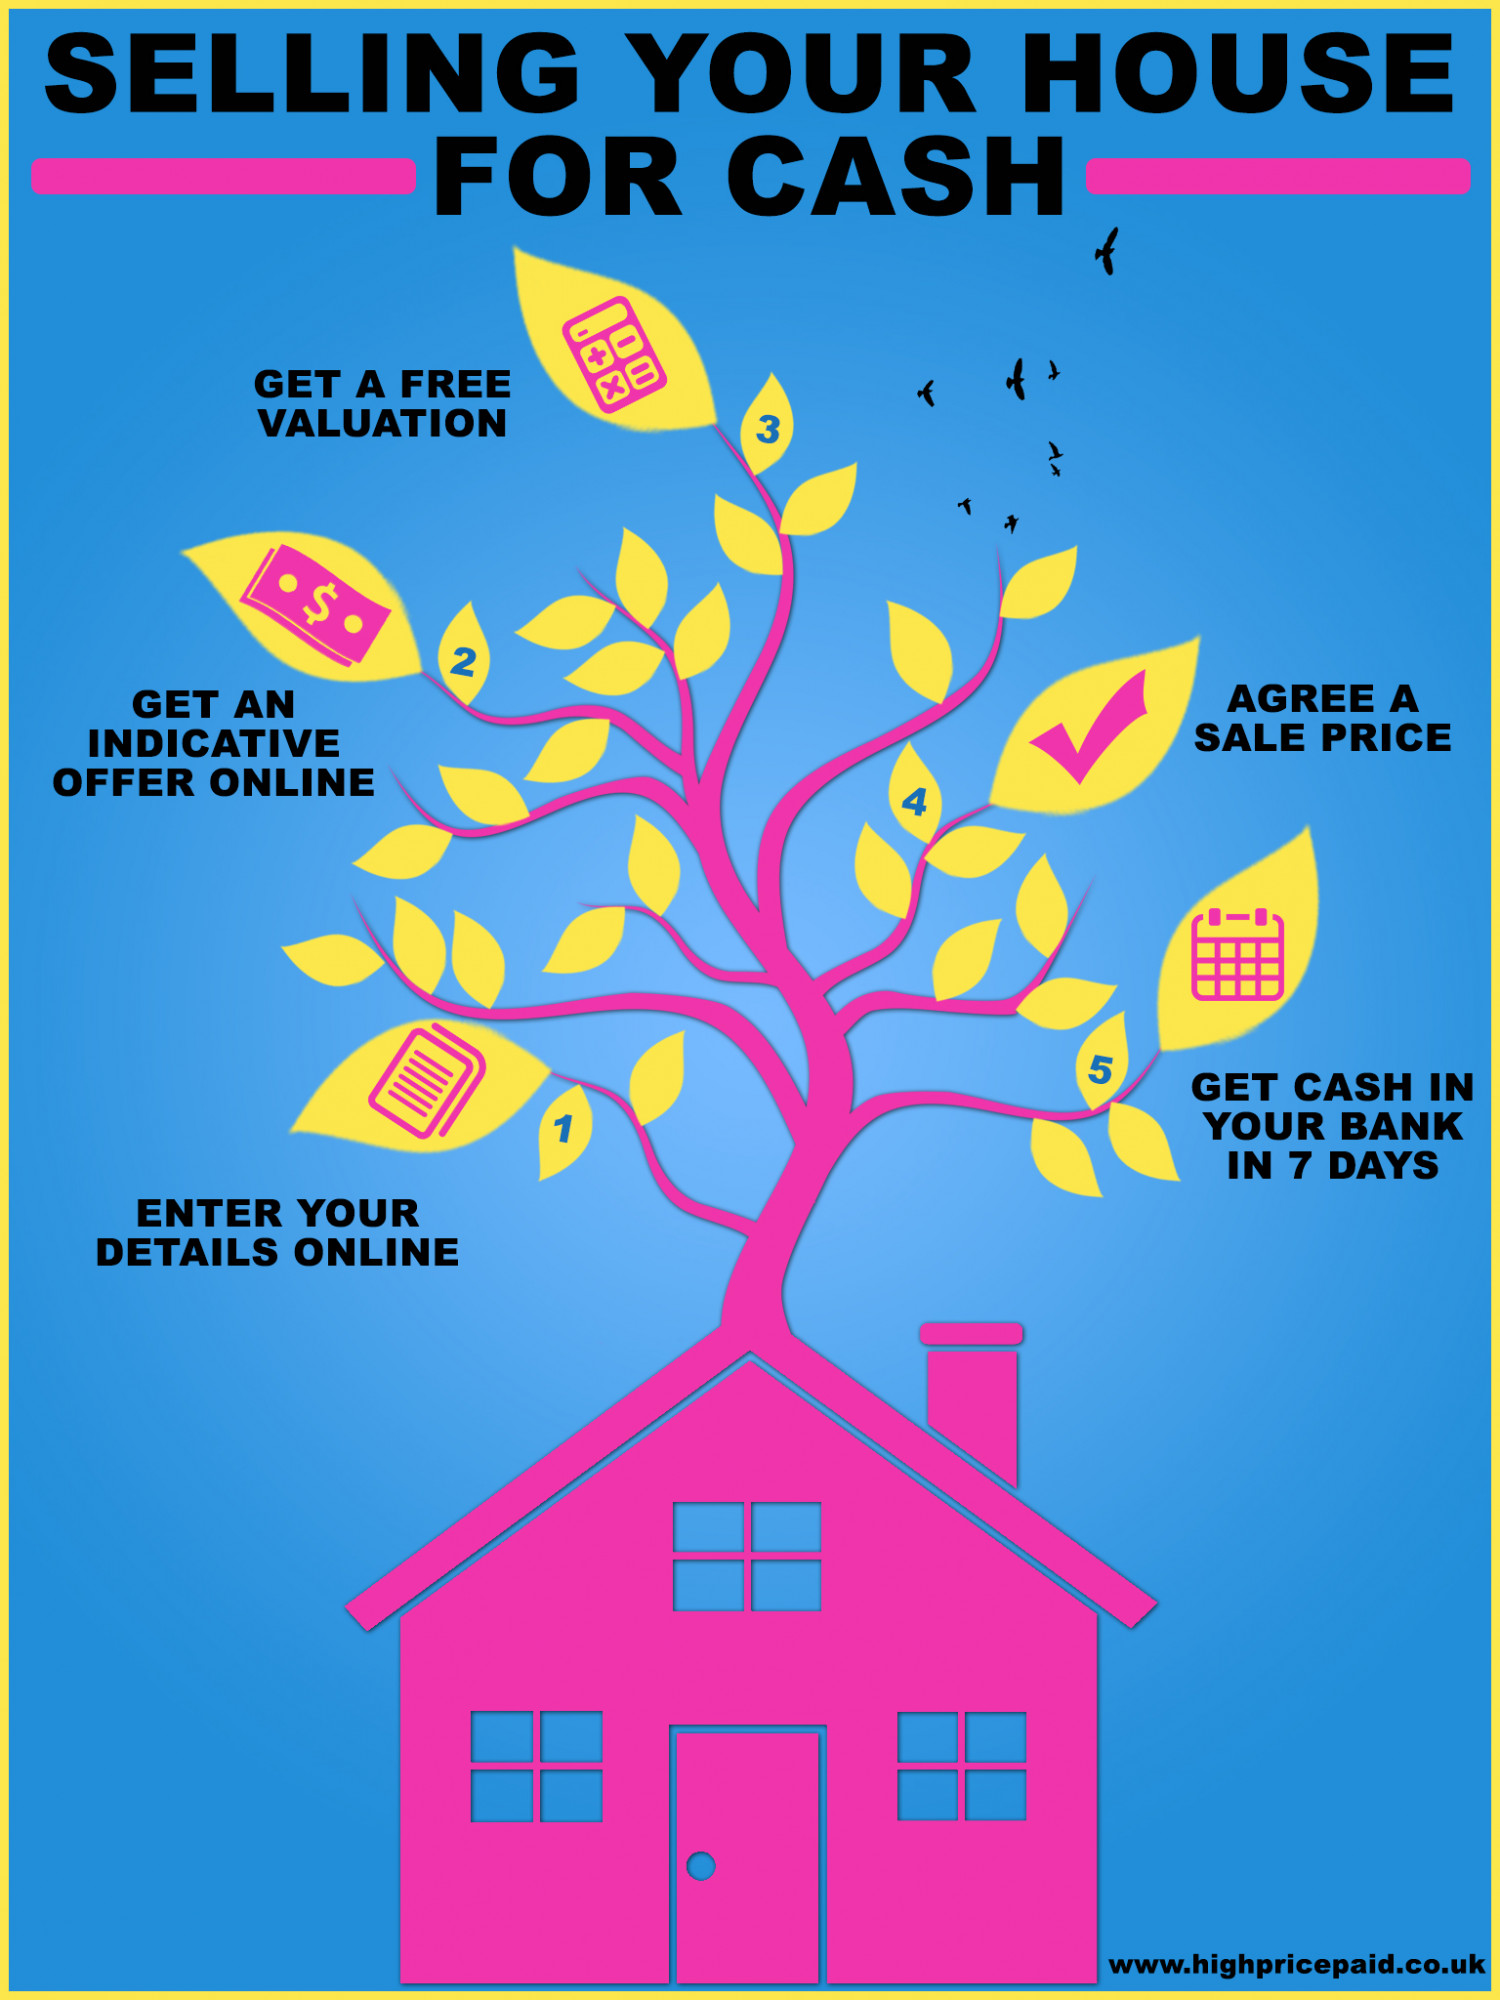 Selling Your House For Cash UK Infographic